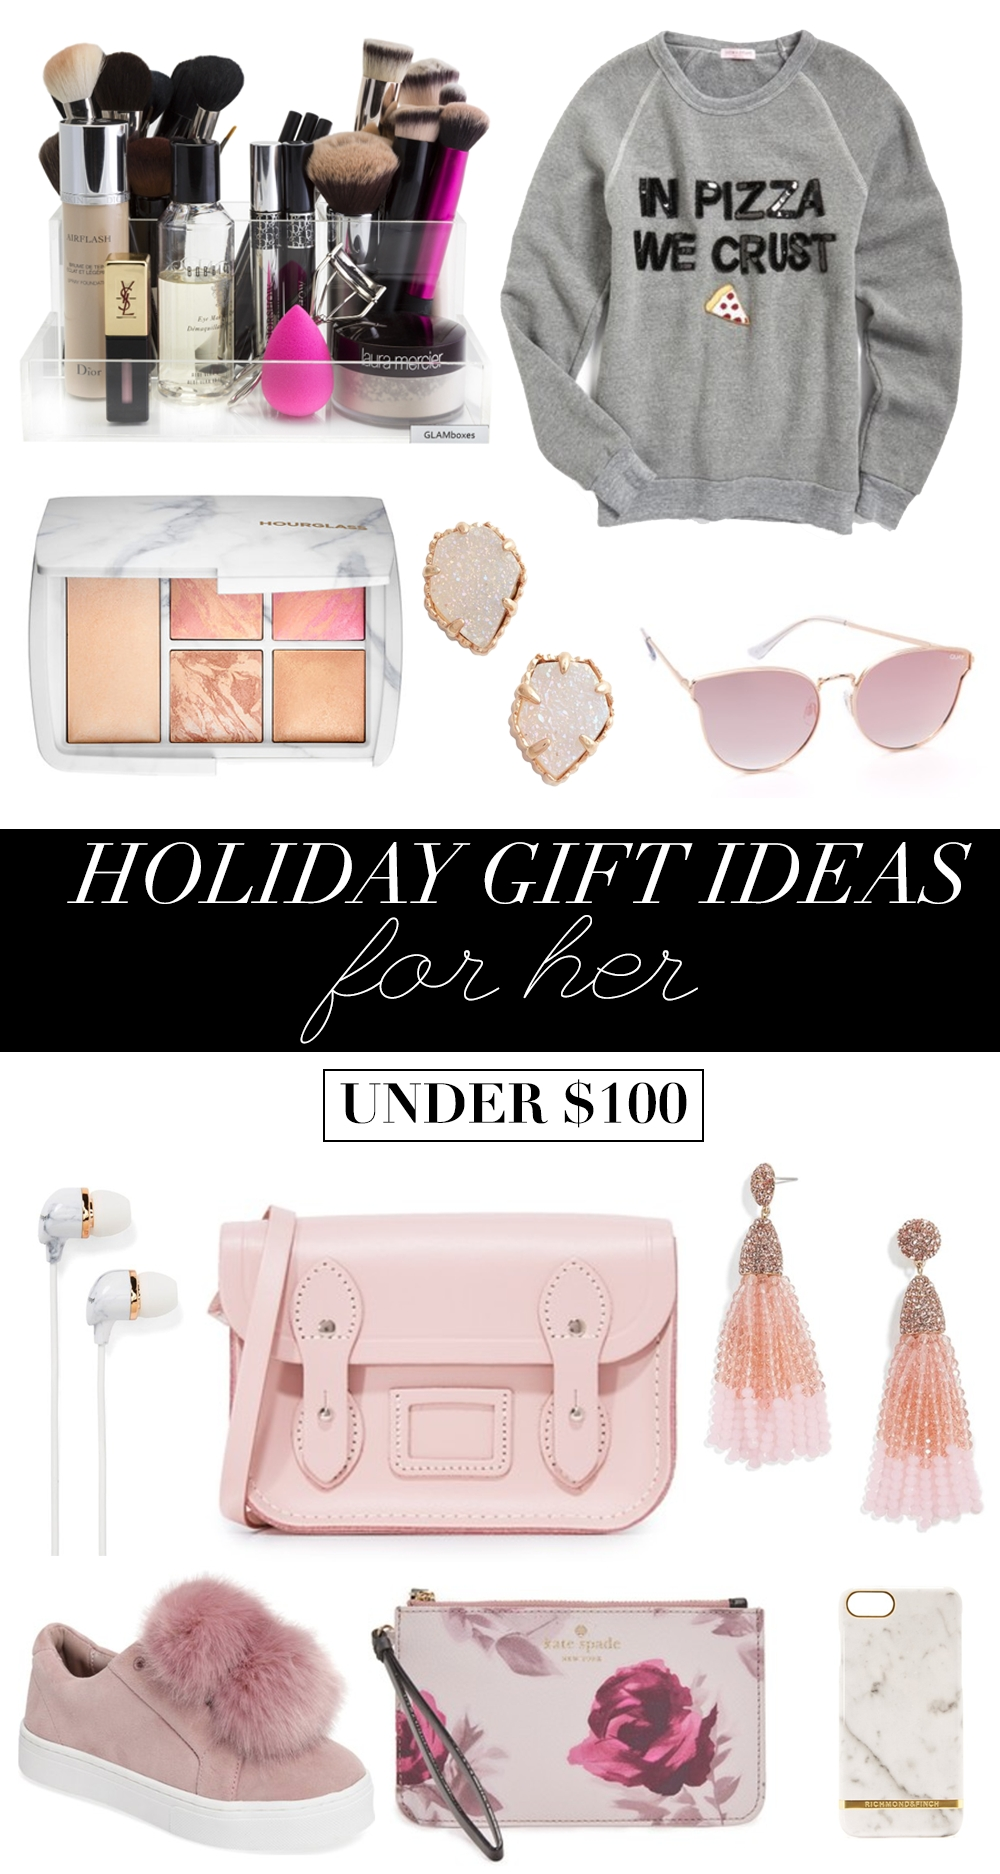 holiday gift ideas for her: under $100 - money can buy lipstick